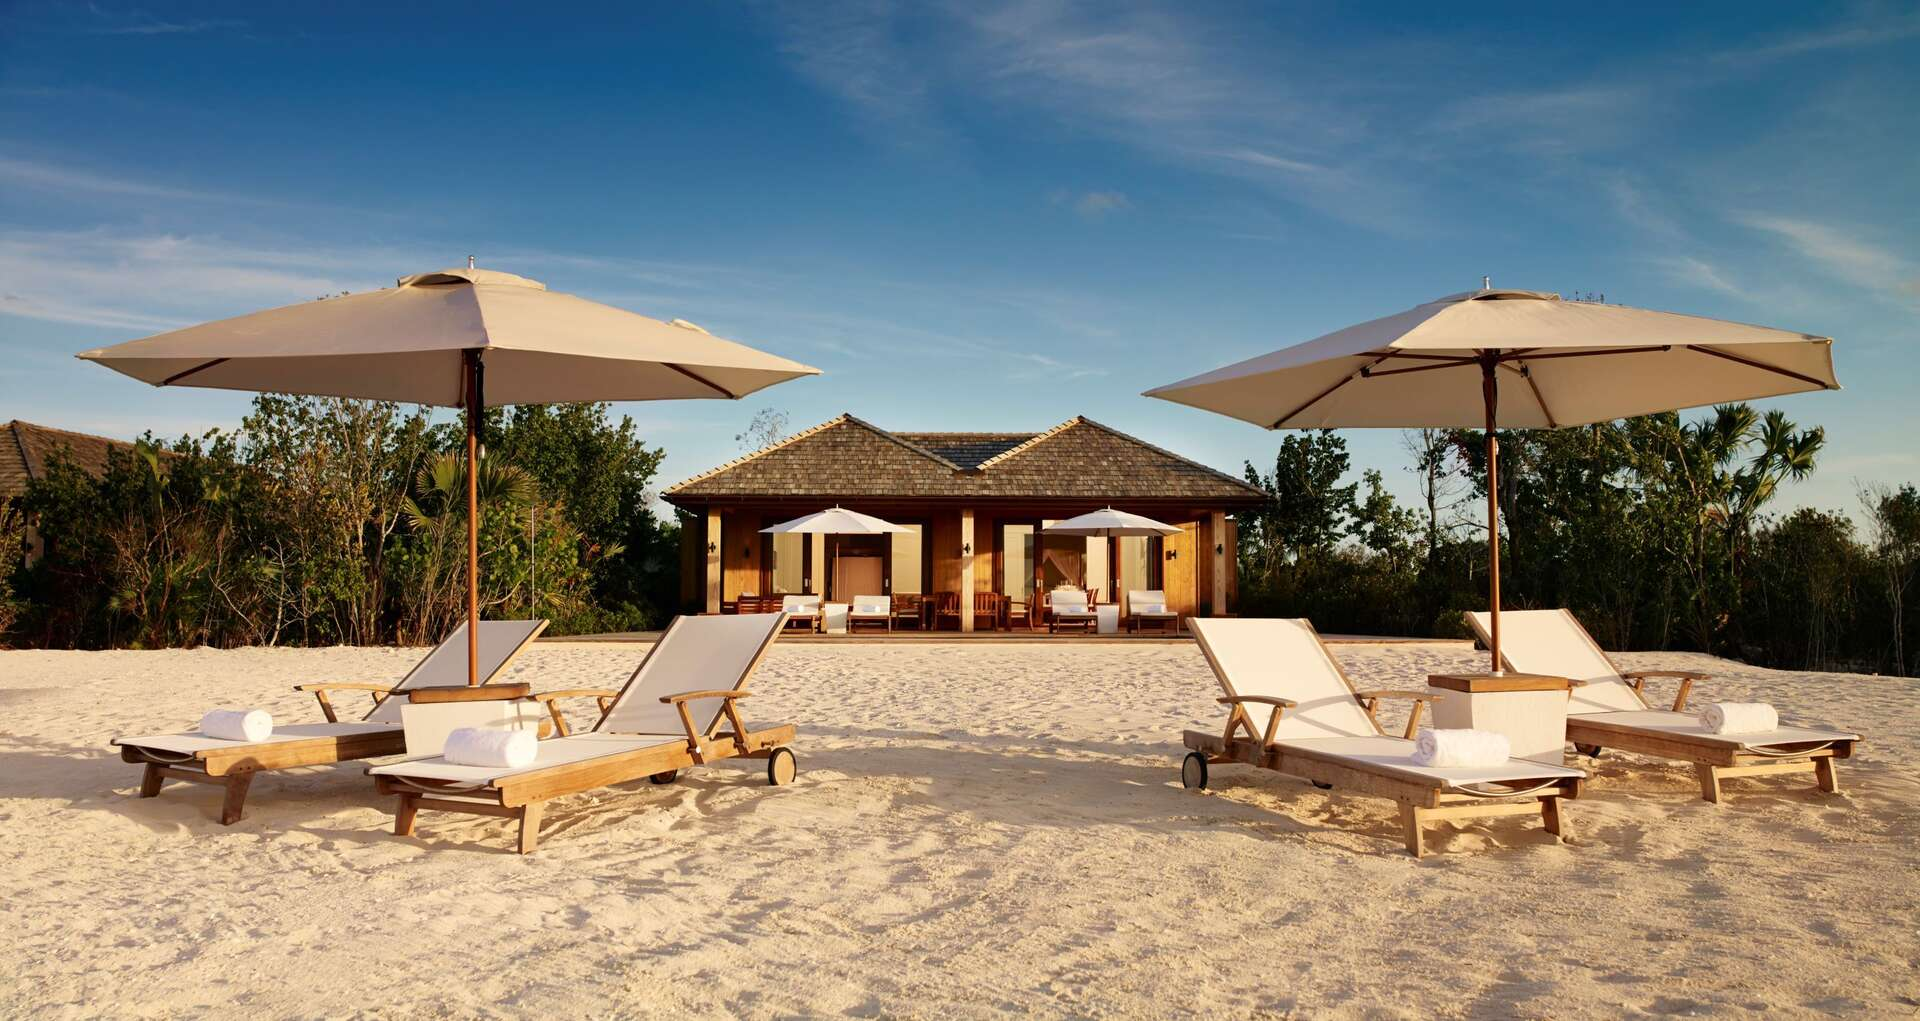 Luxury villa rentals caribbean - Turks and caicos - Parrot cay - Como parrot cay - Beach House 2 BDM - Image 1/11